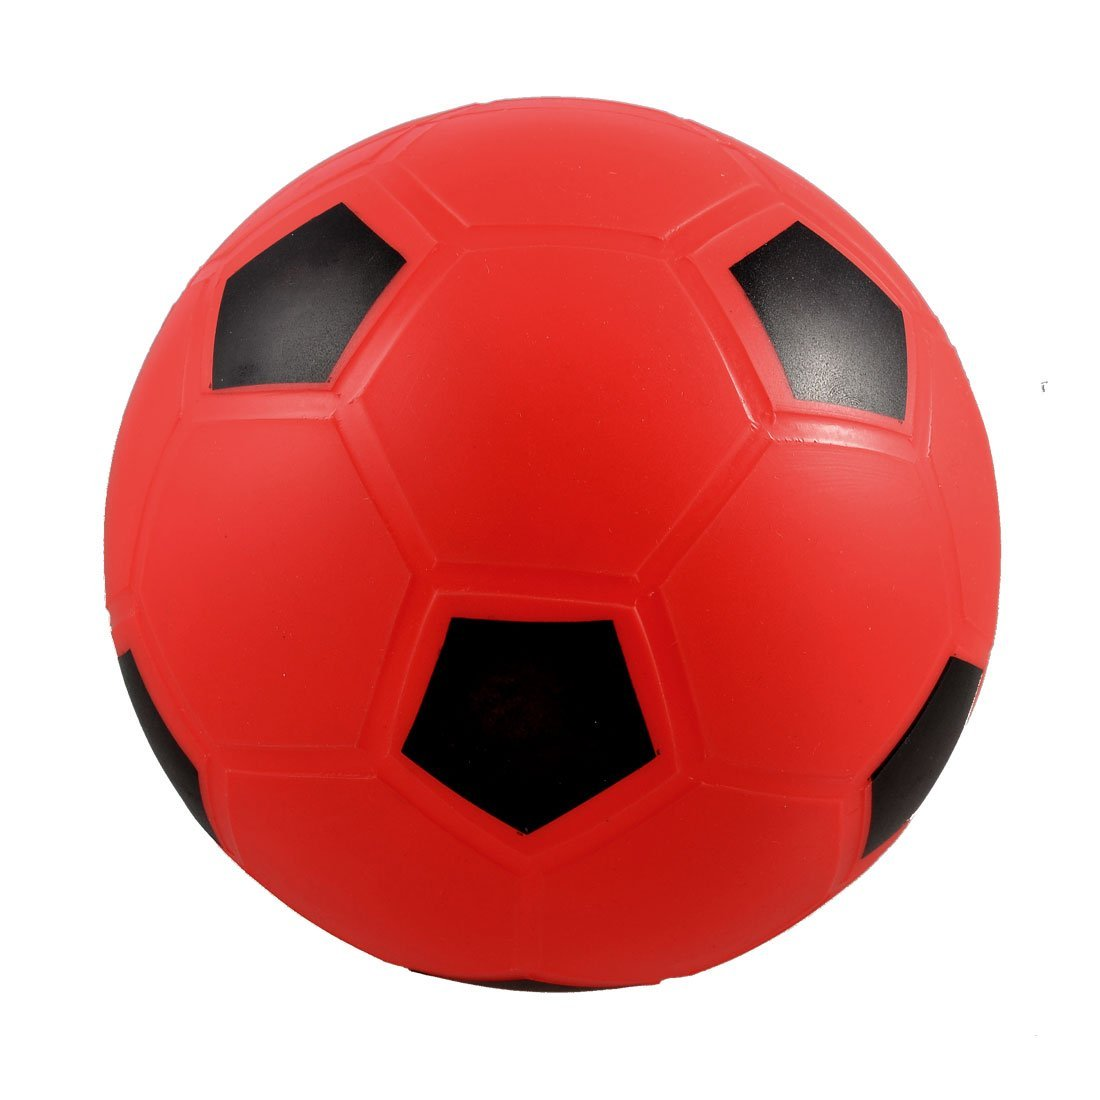 Wholesale!SODIAL(R) 5.5 Inflatable Dia Red PVC Football Soccer Toy For Children Kids